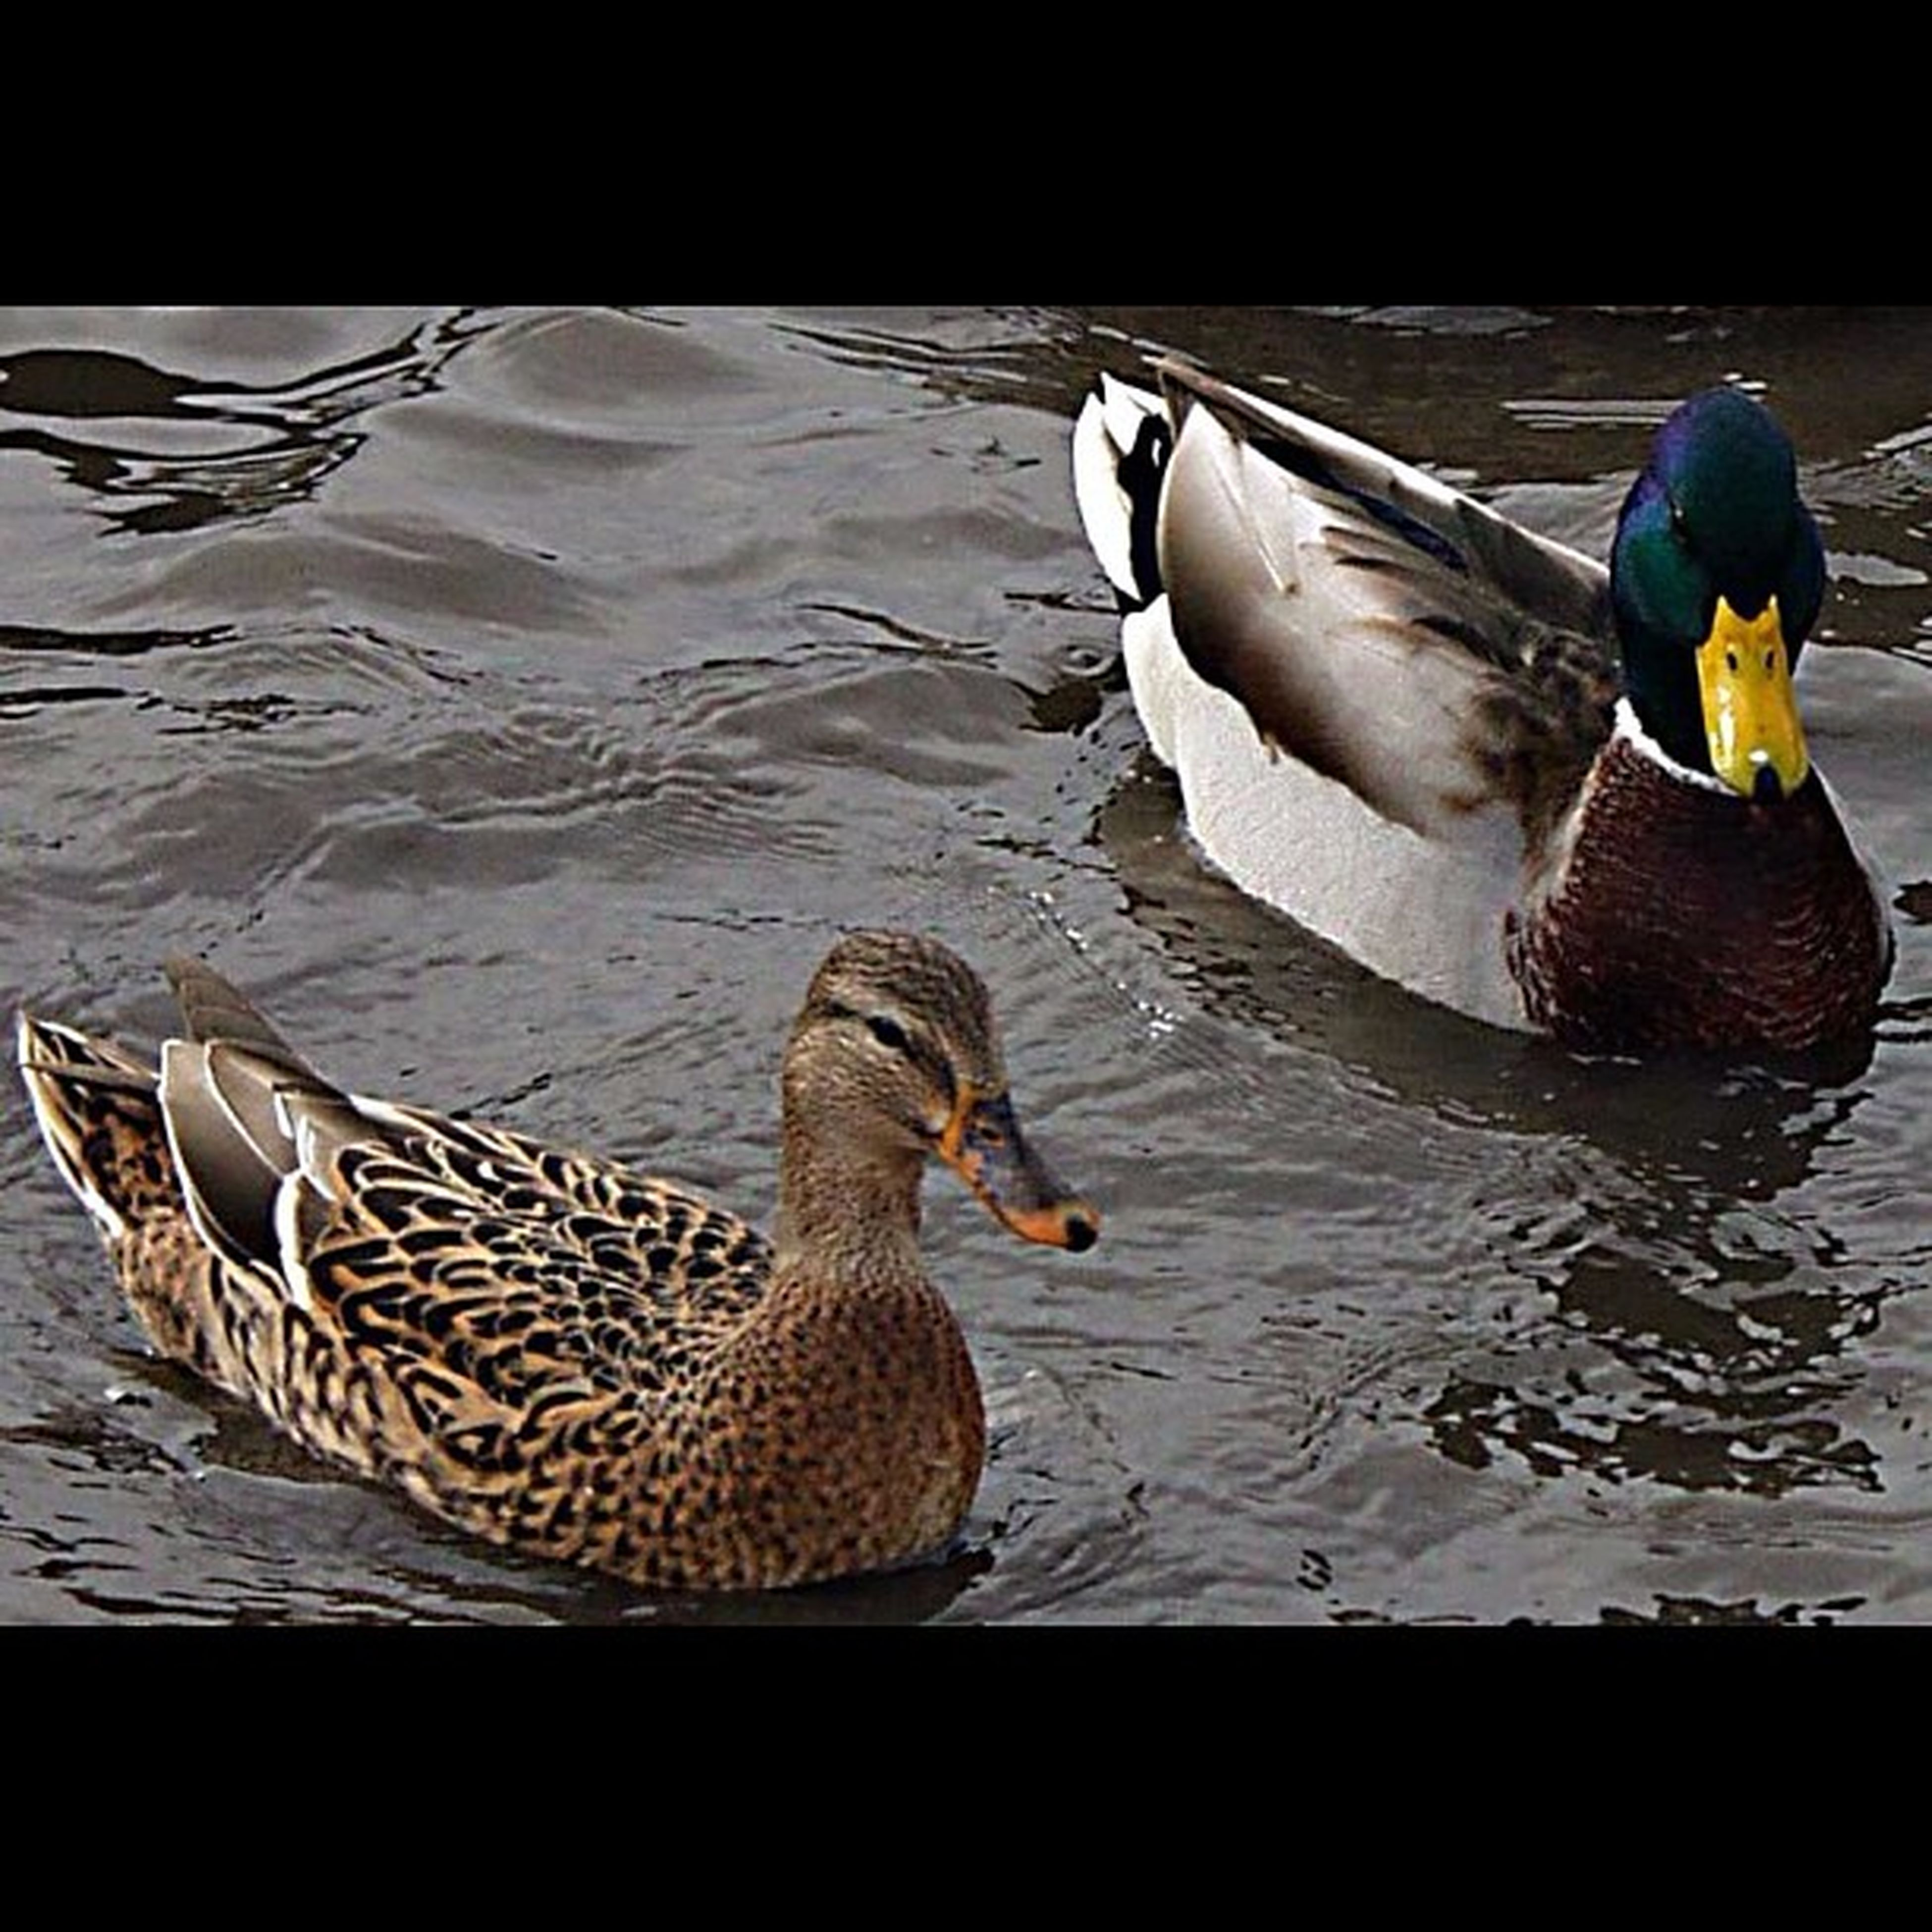 bird, water, animal themes, animals in the wild, wildlife, duck, lake, rippled, swimming, nature, river, water bird, mallard duck, outdoors, high angle view, waterfront, swan, two animals, side view, day